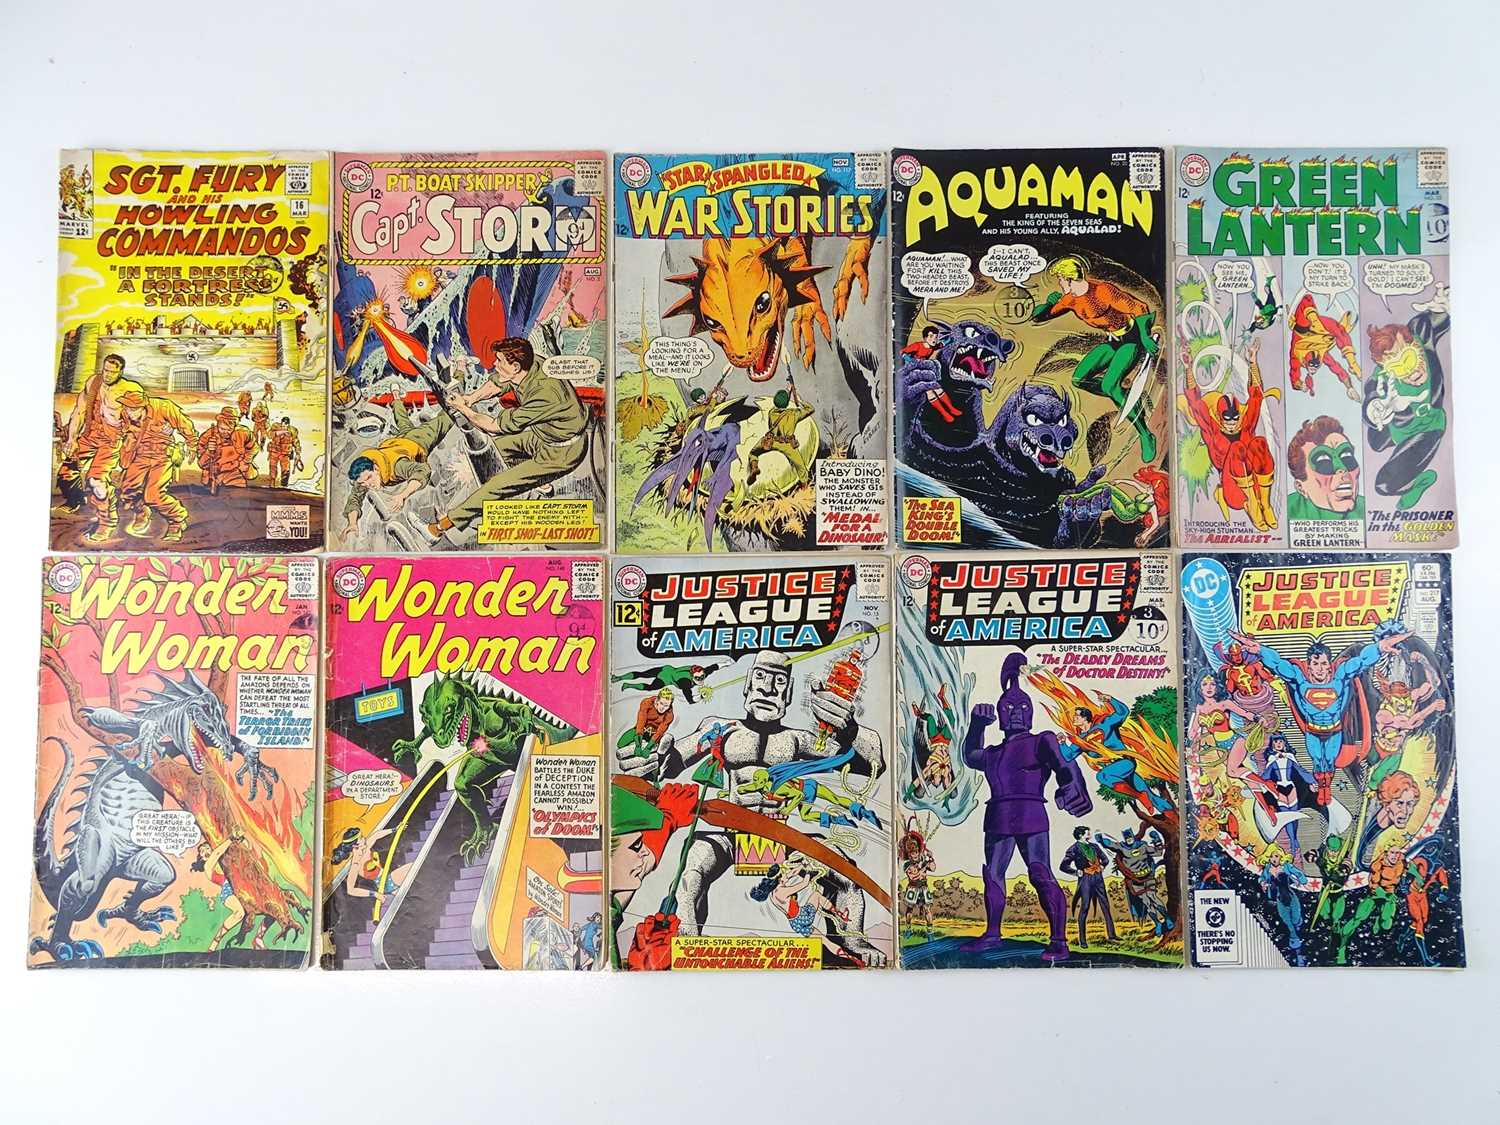 MIXED LOT MARVEL & DC COMICS - (10 in Lot) - (MARVEL/DC - UK Cover Price) - Includes SGT. FURY & HIS